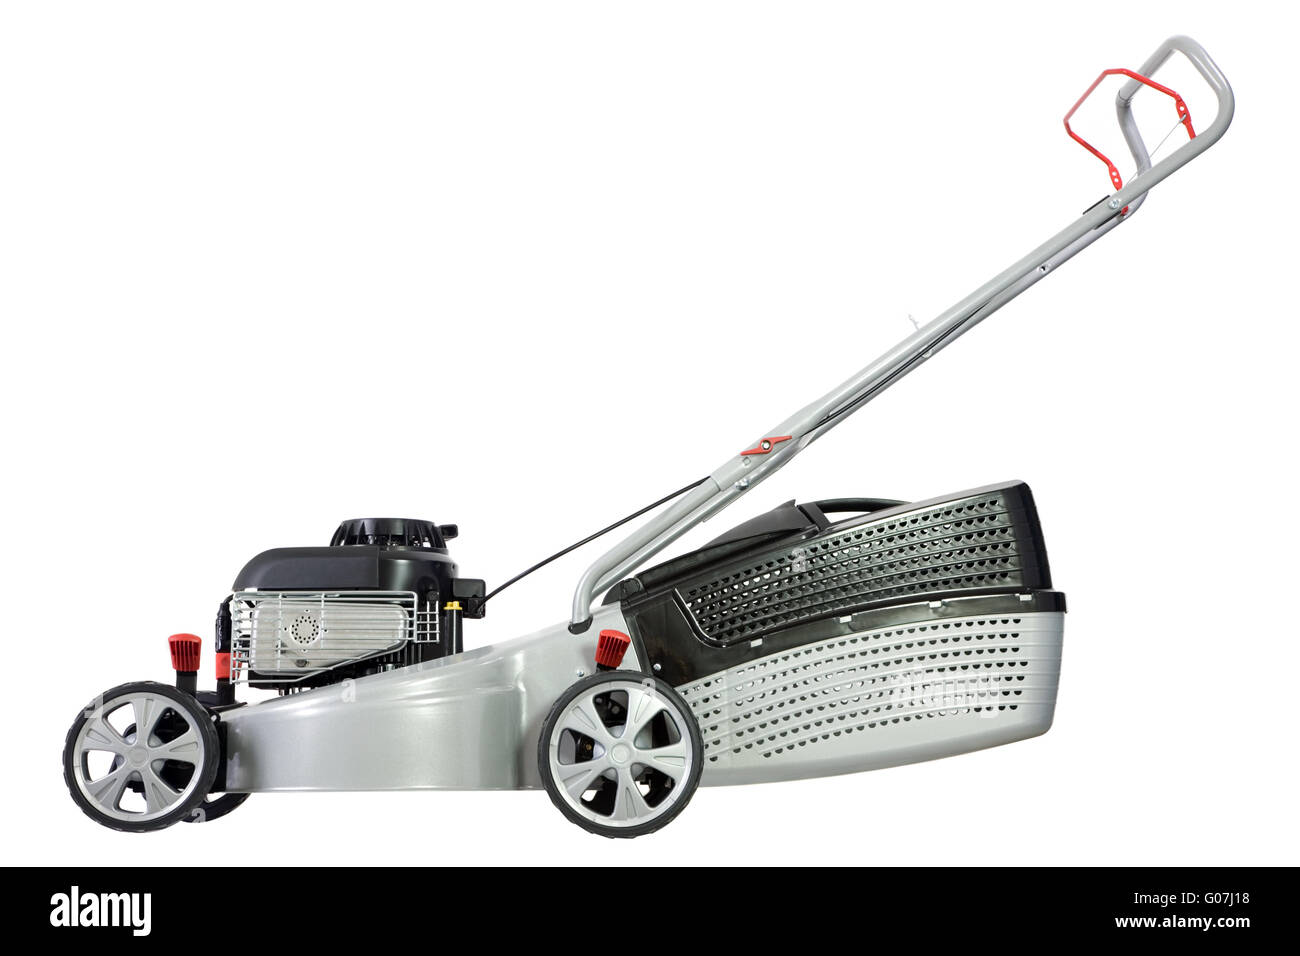 Silver lawn mower. - Stock Image